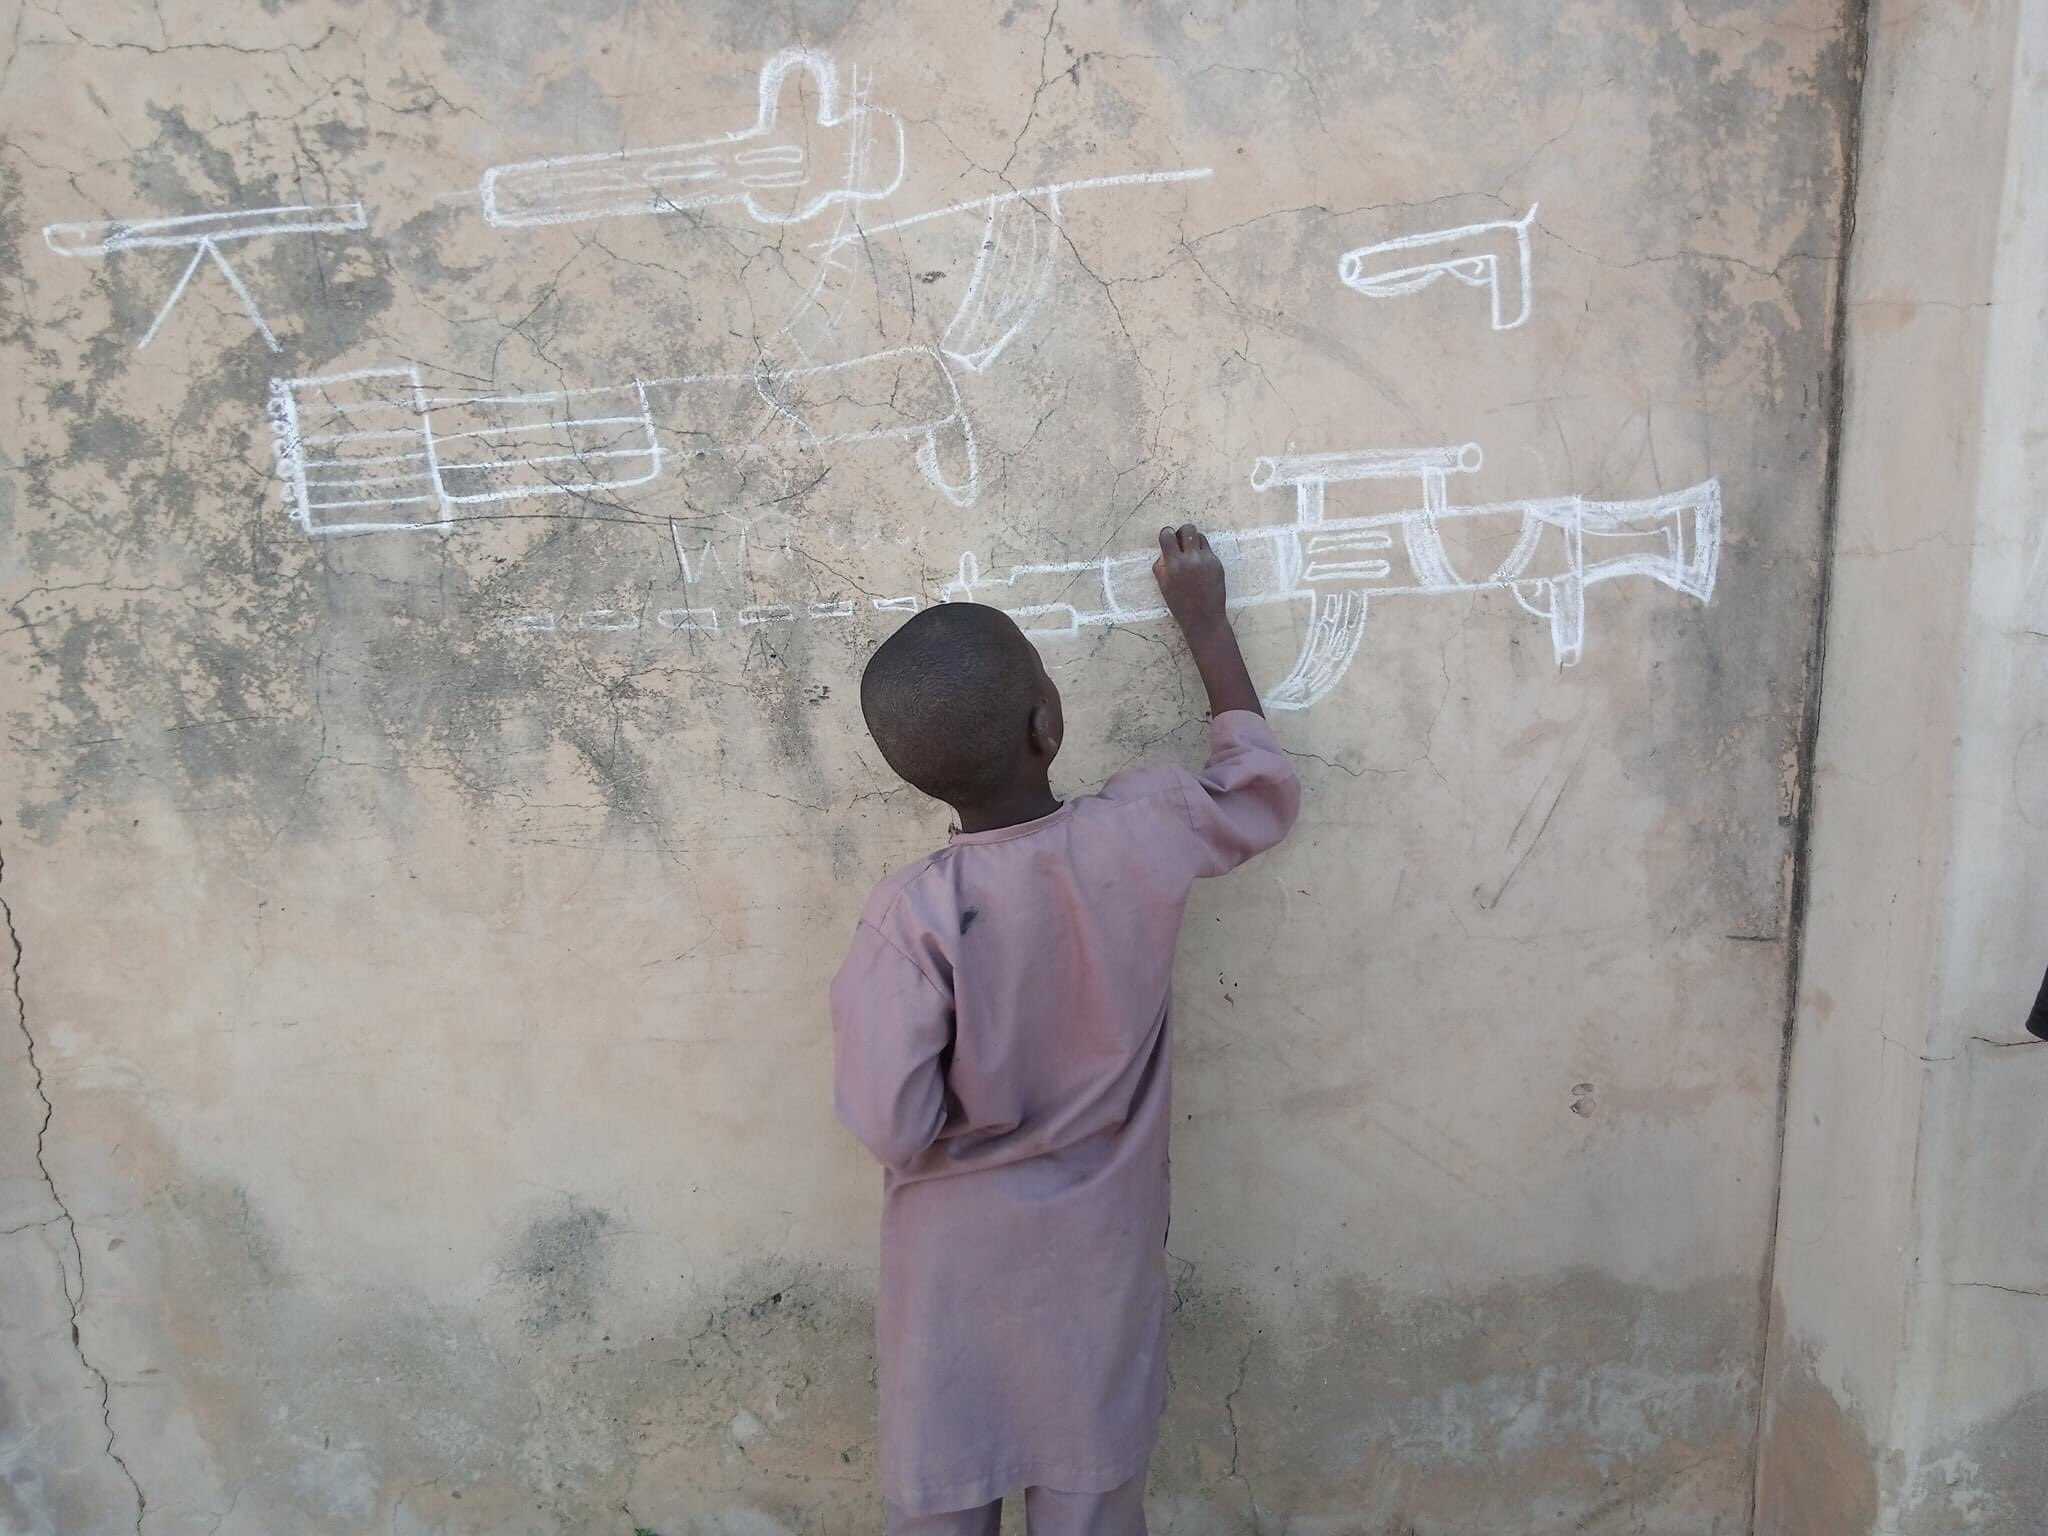 'This is sad' - Nigerians react to photo of little boy drawing a gun on the wall in Yobe